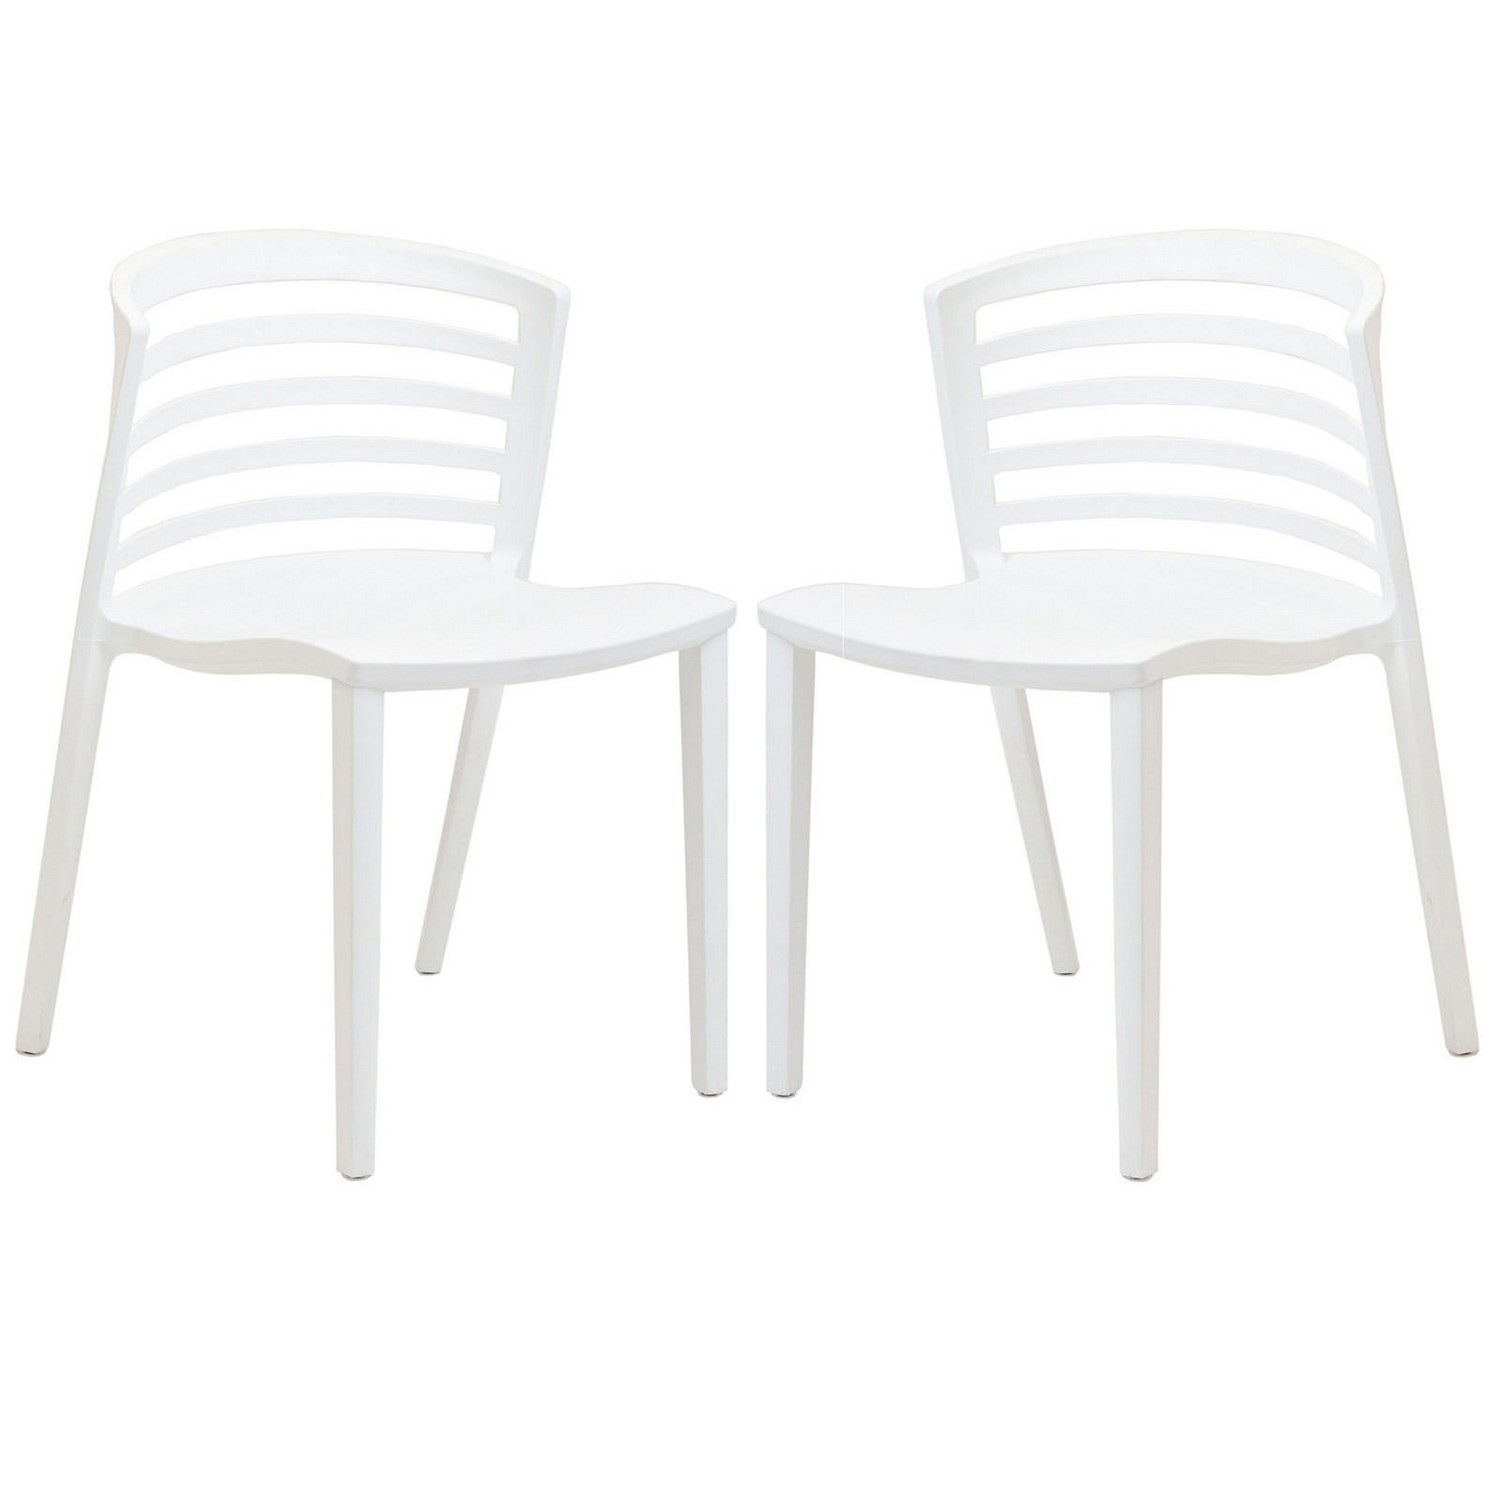 Modway Curvy Dining Chairs Set of 2 - White